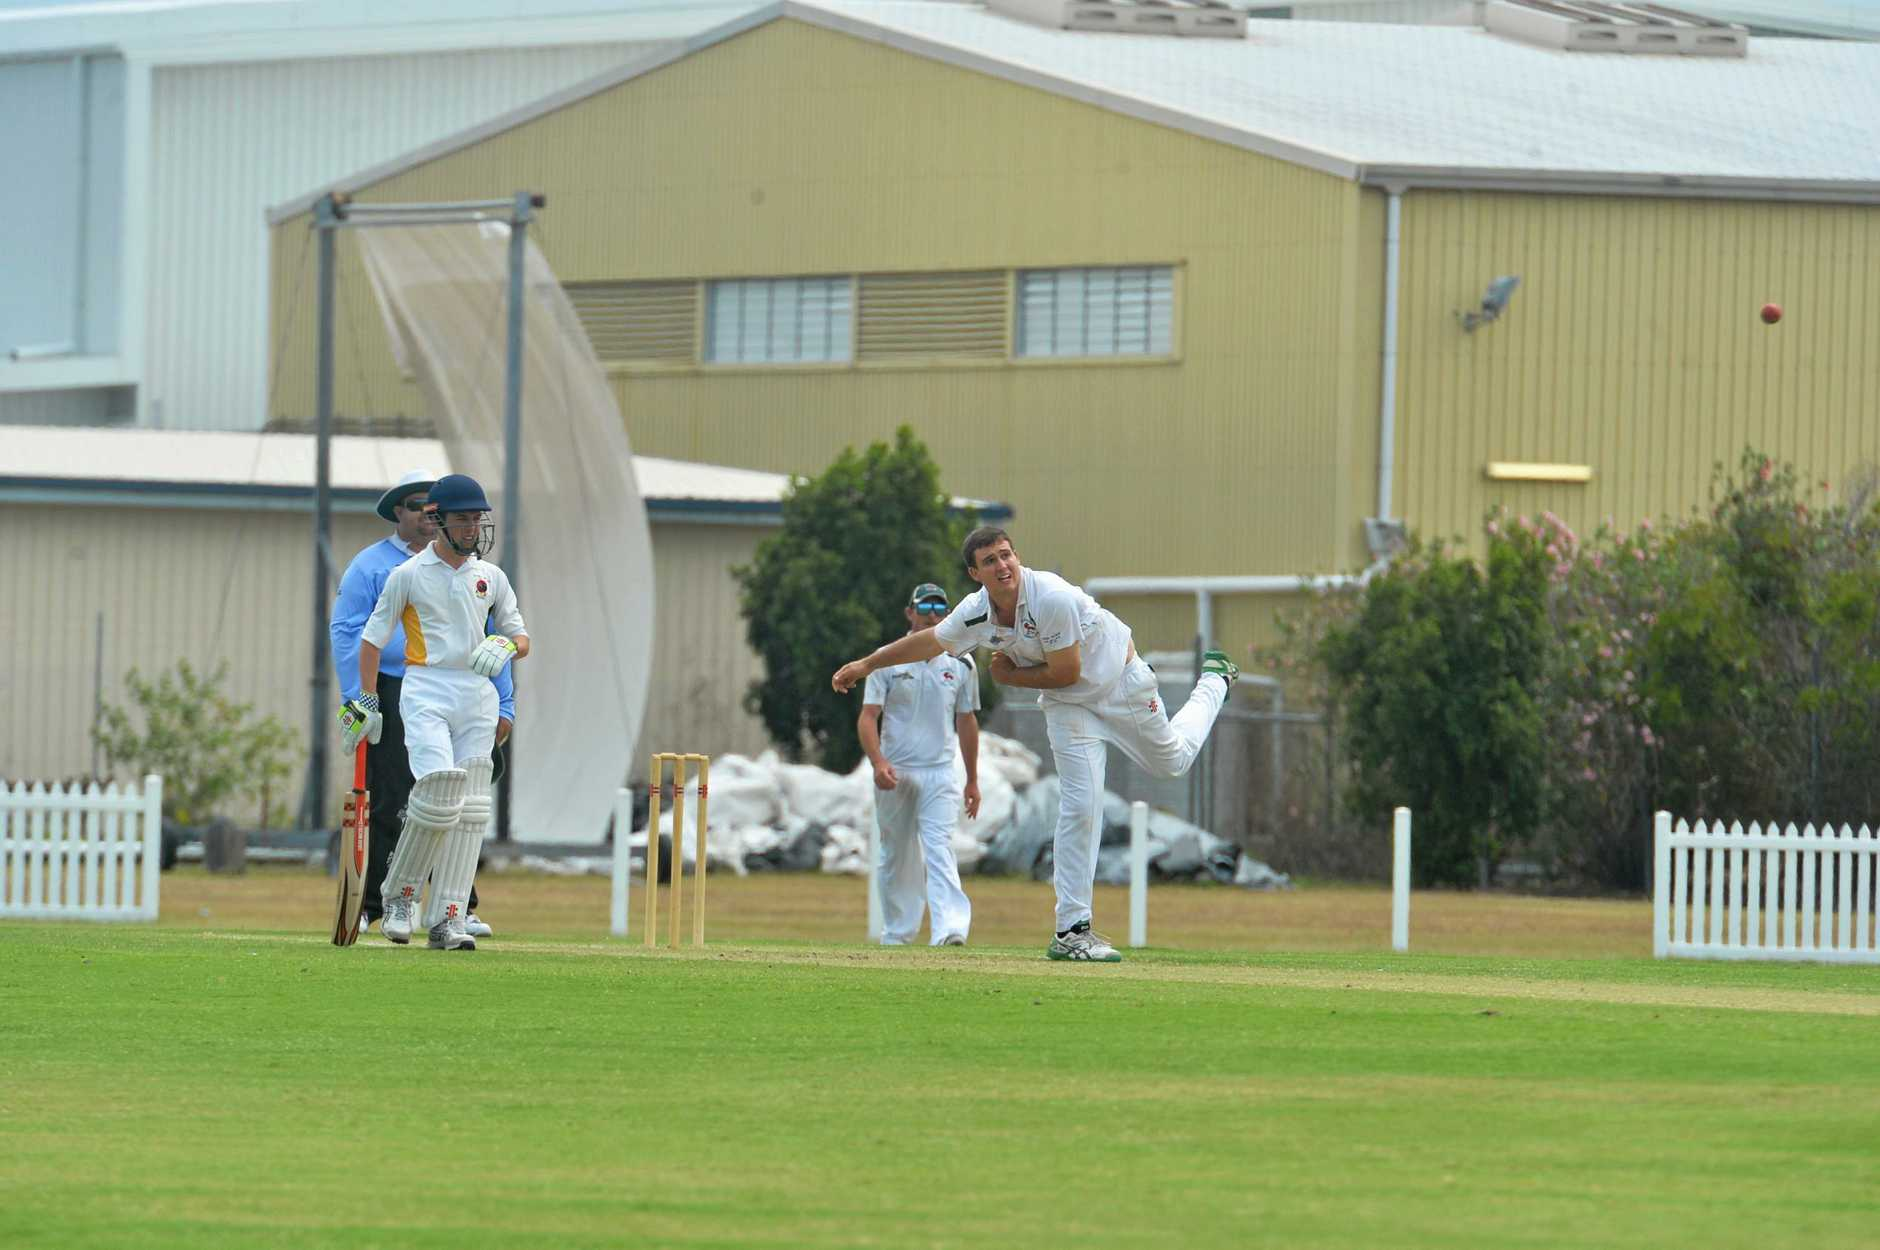 Star spinner Tom McFarlane will be a key for Walkerston against Norths in their Mackay Cricket Association first grade clash this weekend.